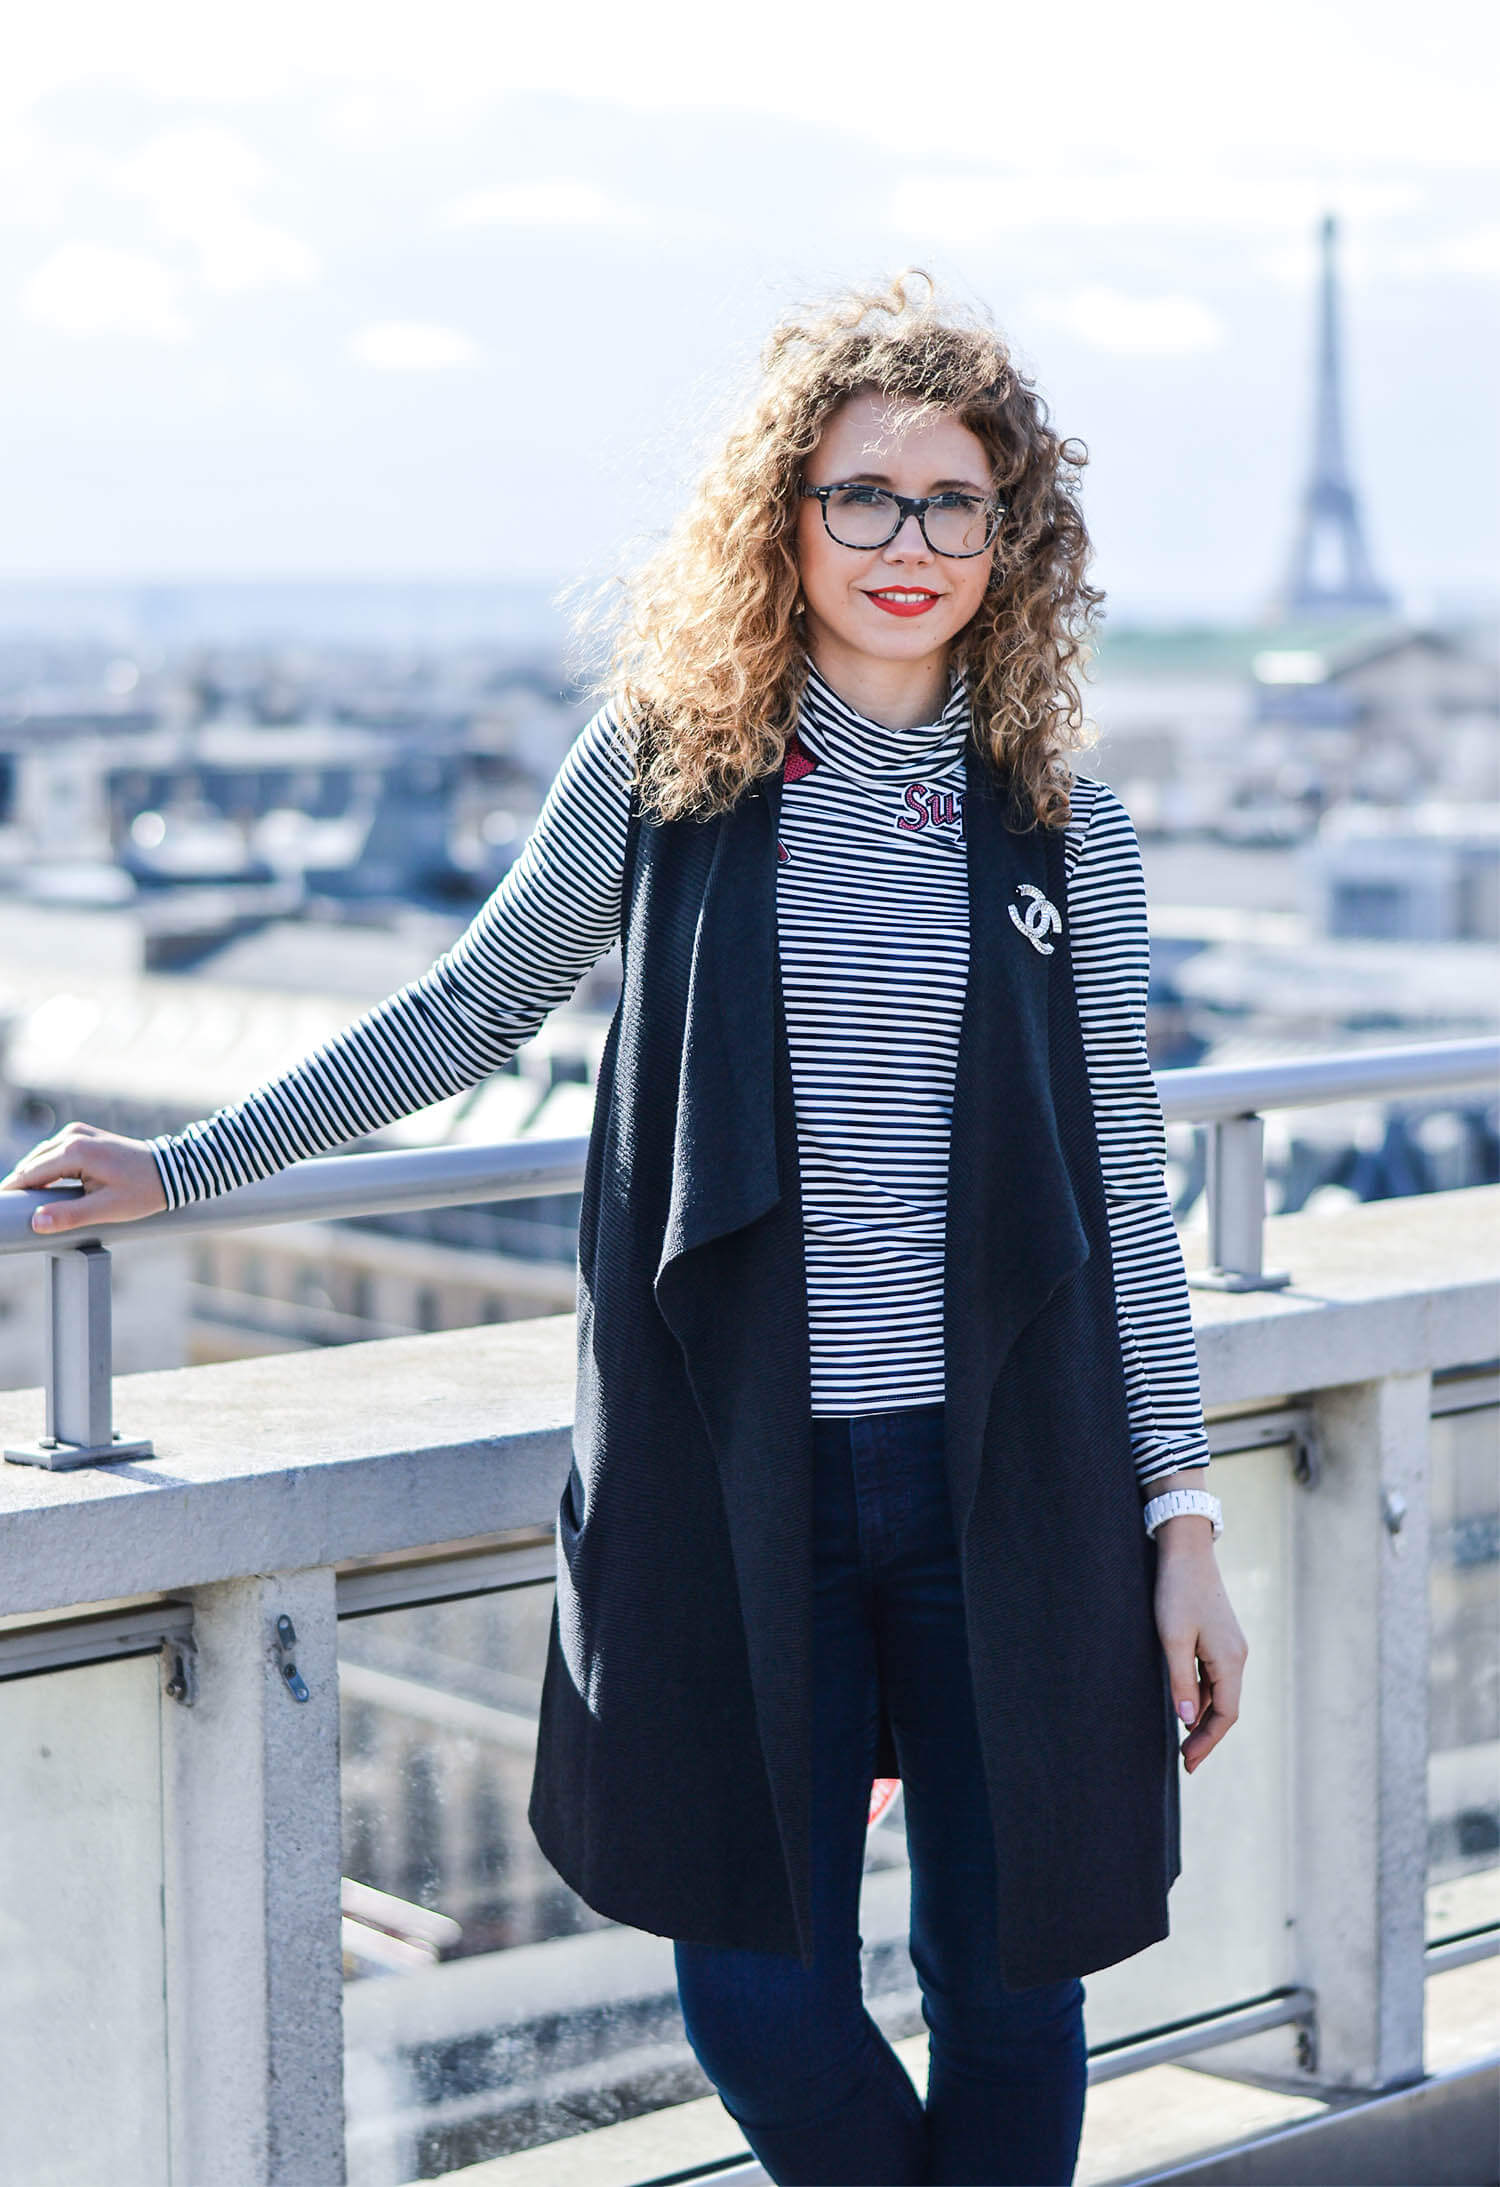 Kationette-fashionblog-paris-outfit-chanel-eiffeltower-nike-streetstyle-curls-patches